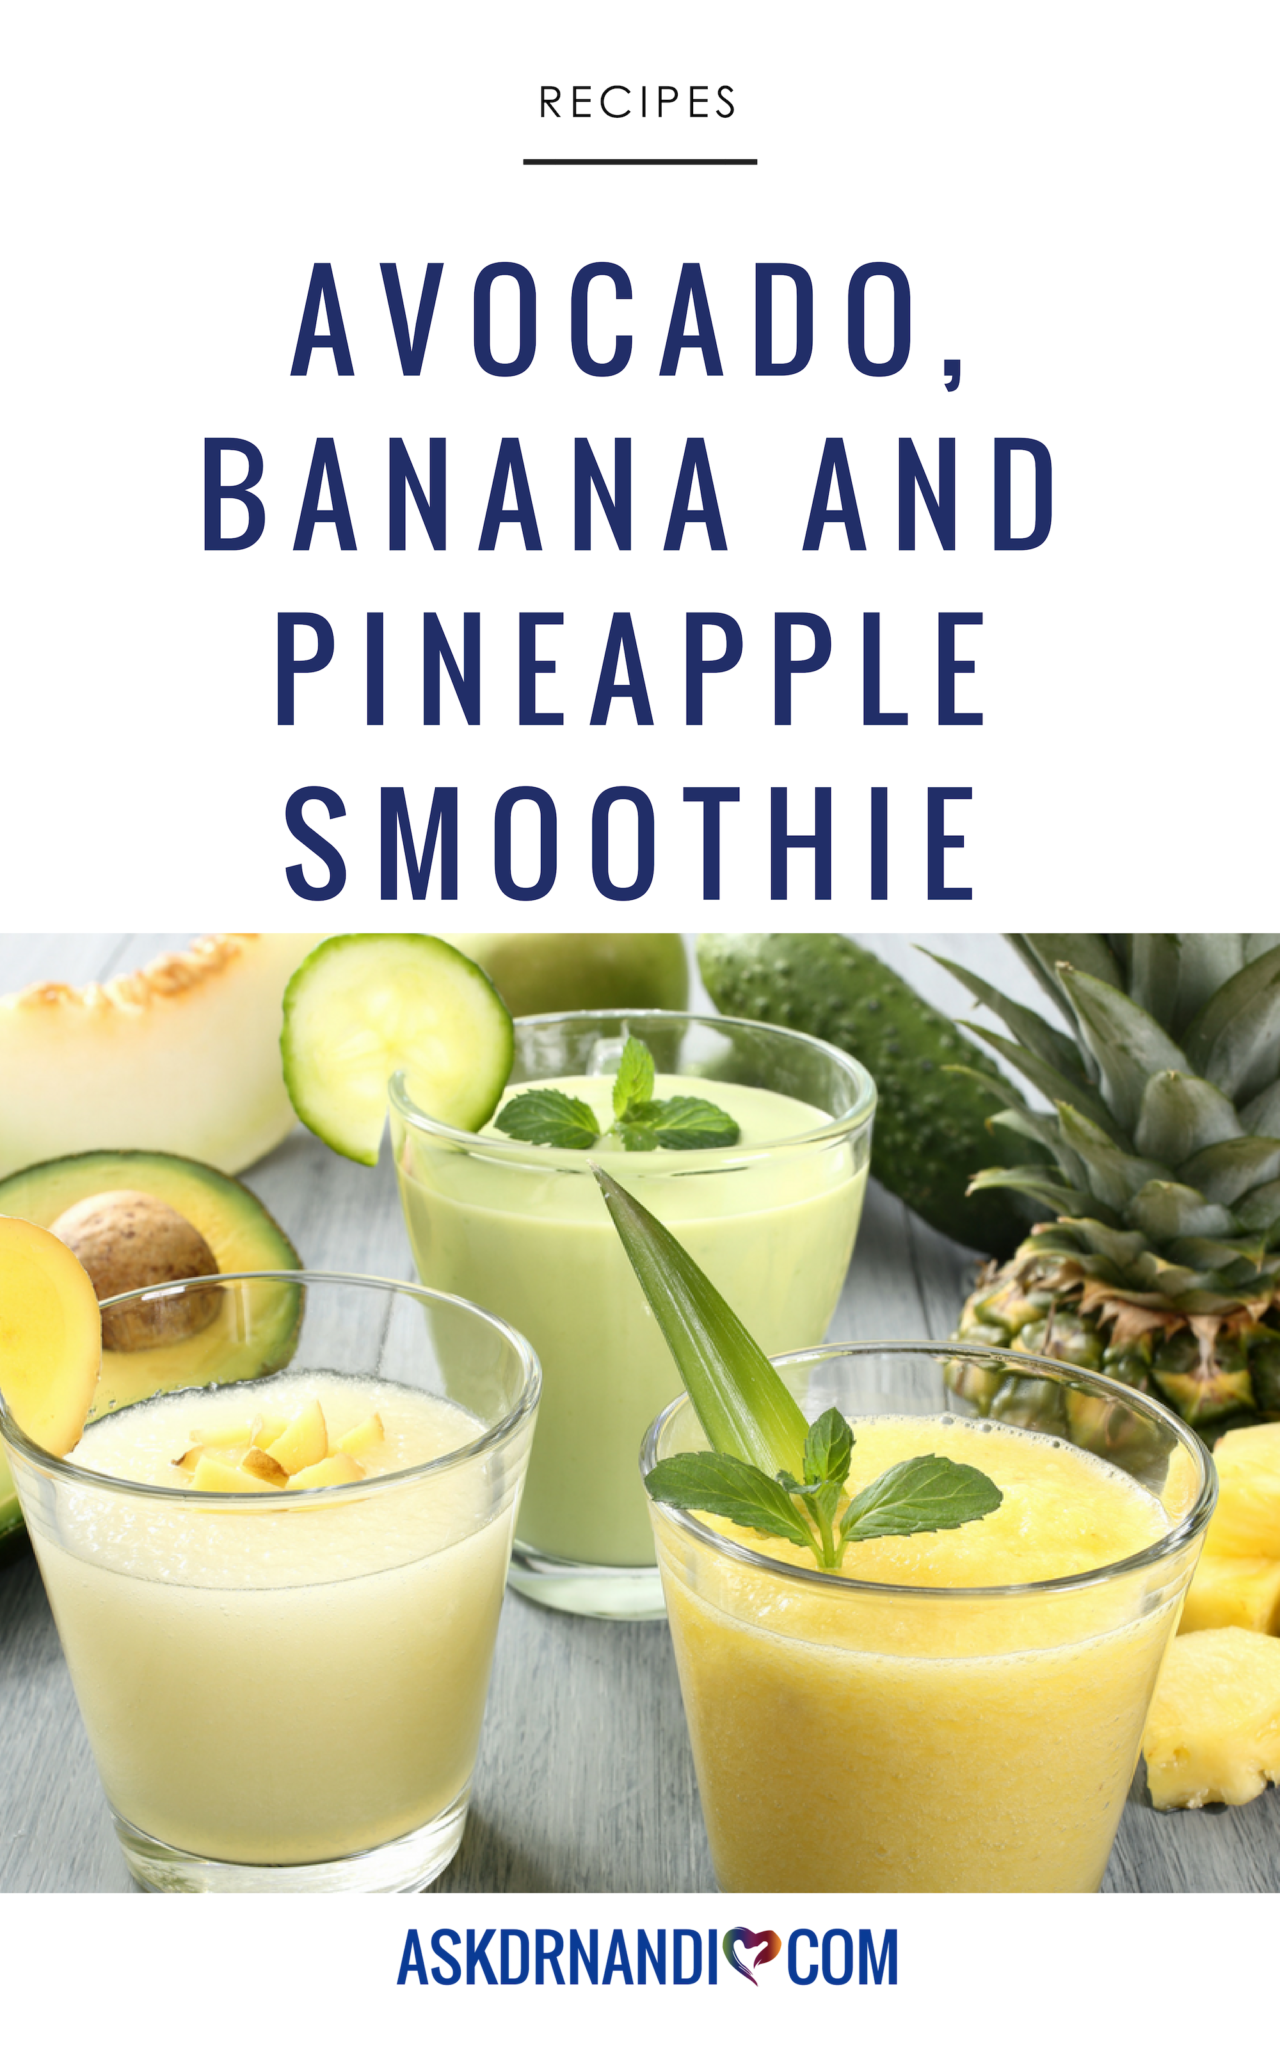 This Avocado, Banana and Pineapple Smoothie recipe will make your mouth dance with delight!